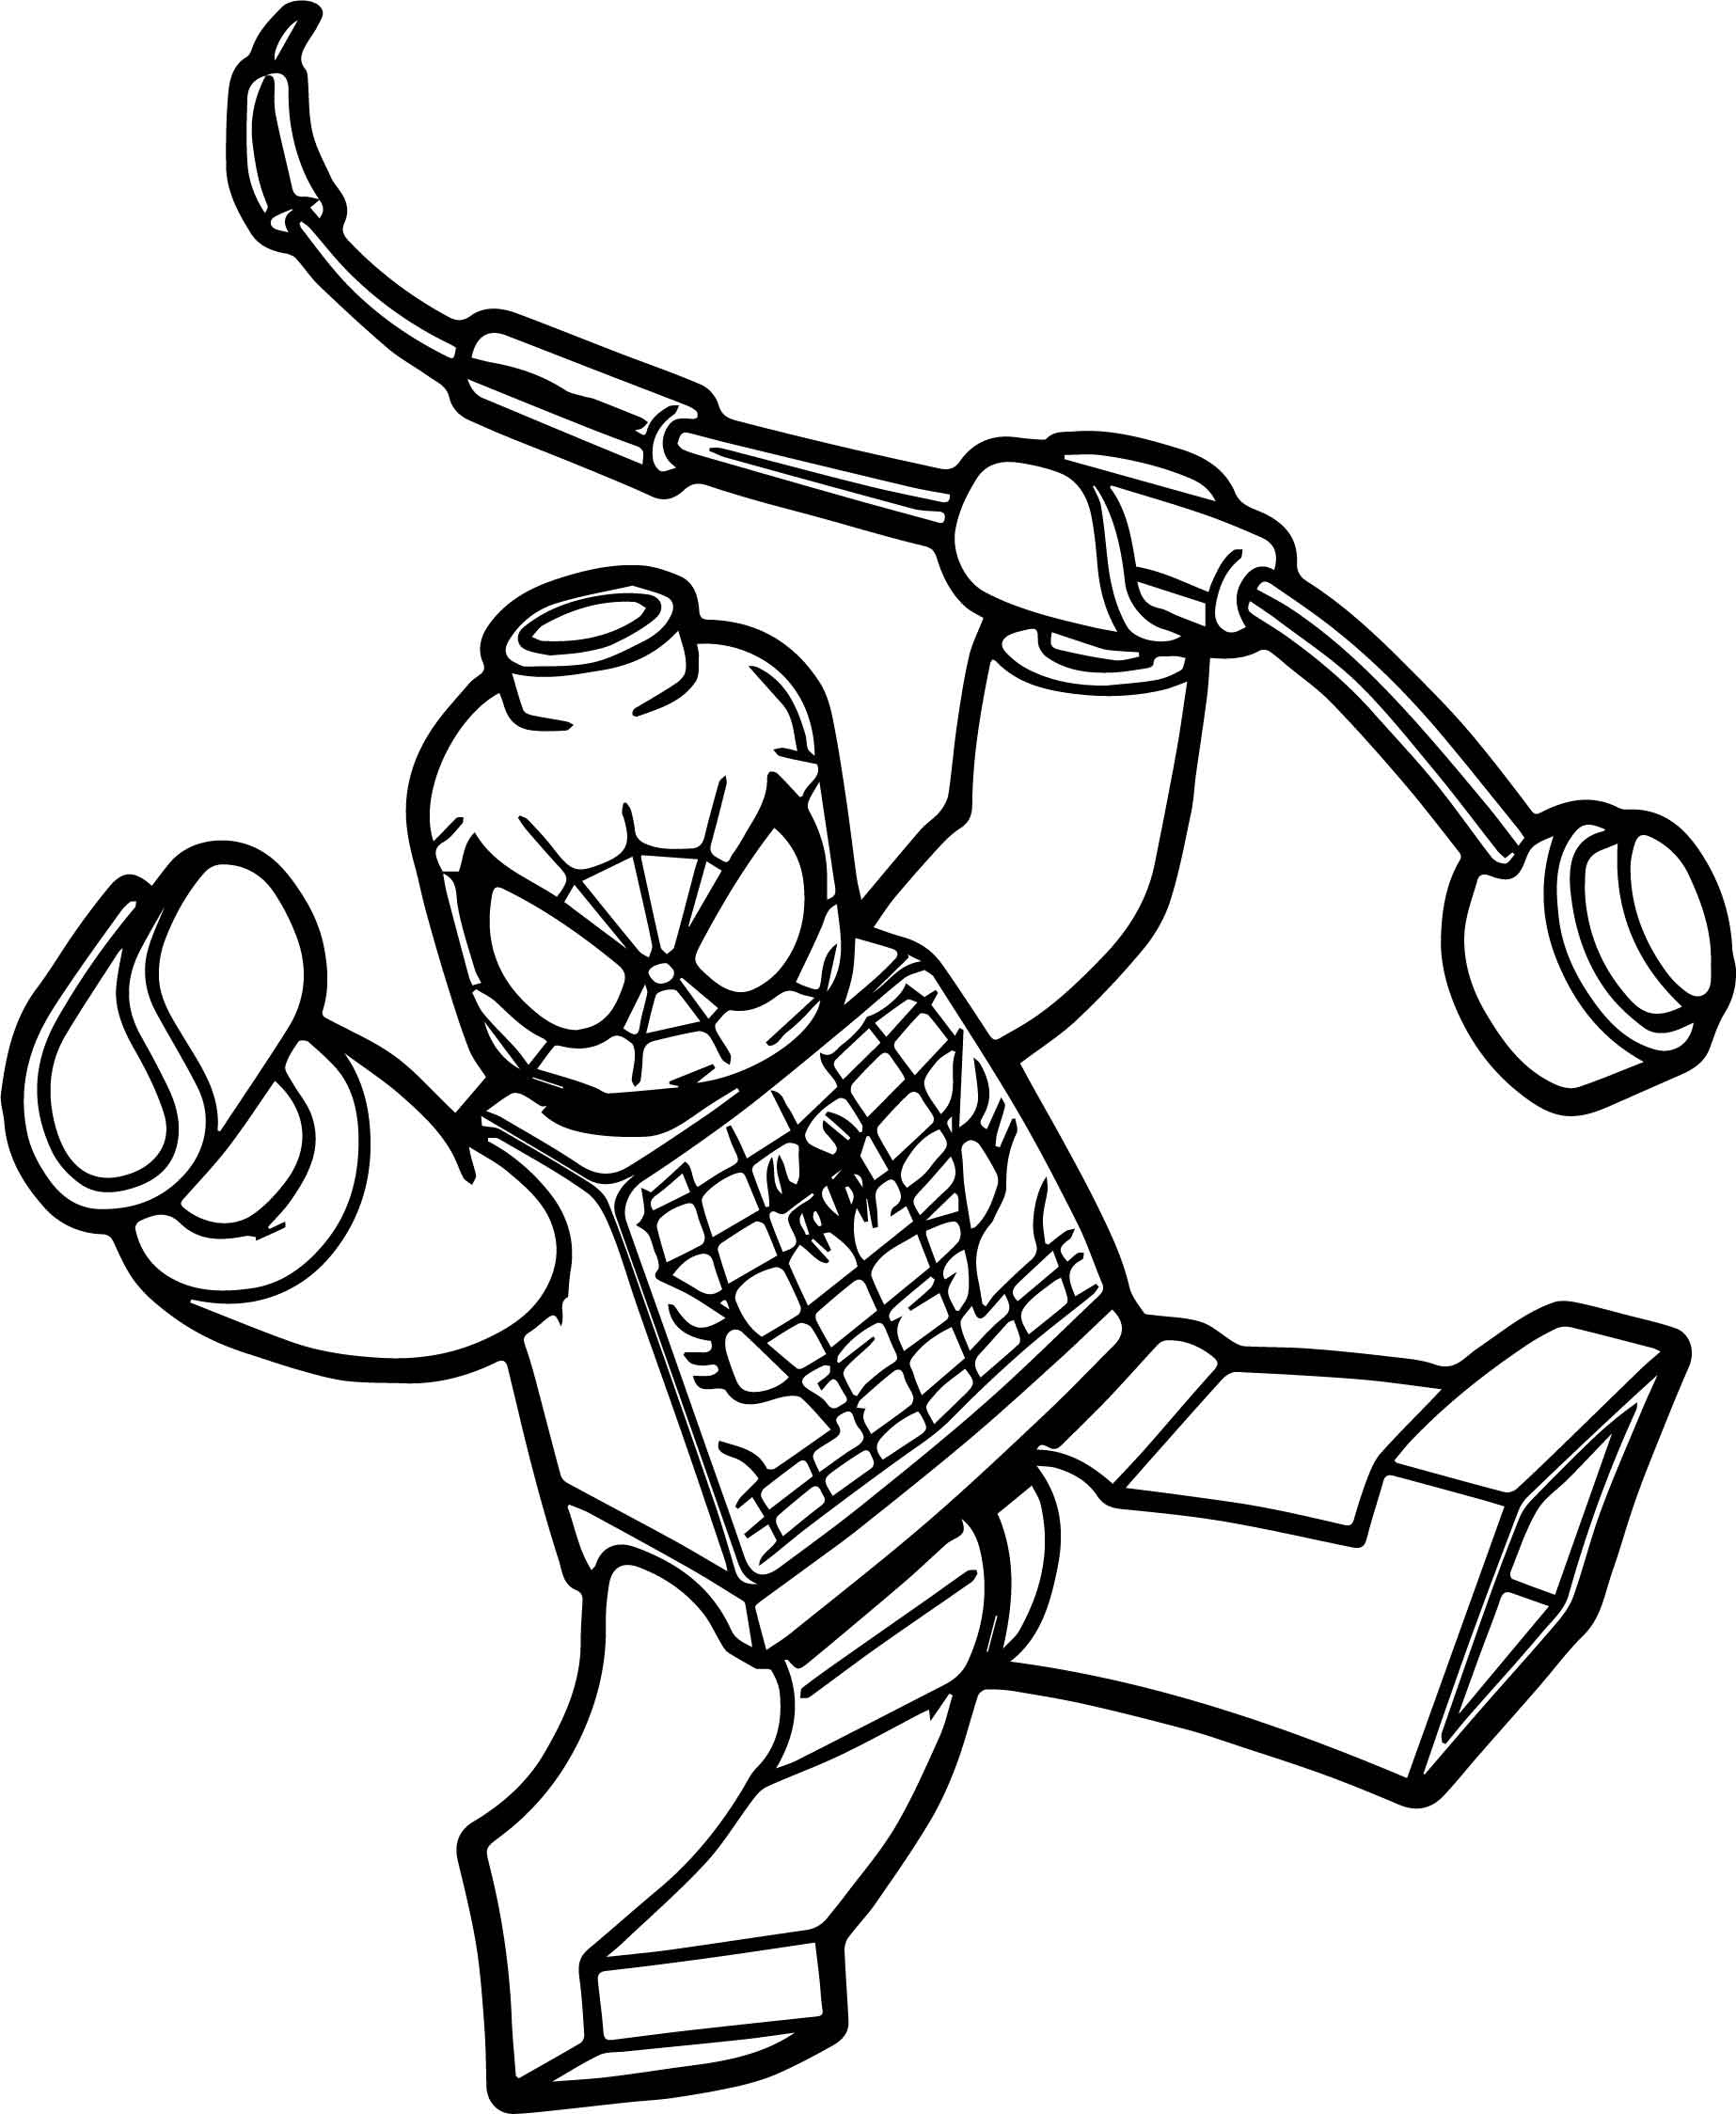 coloring spiderman spiderman outline drawing at getdrawings free download coloring spiderman